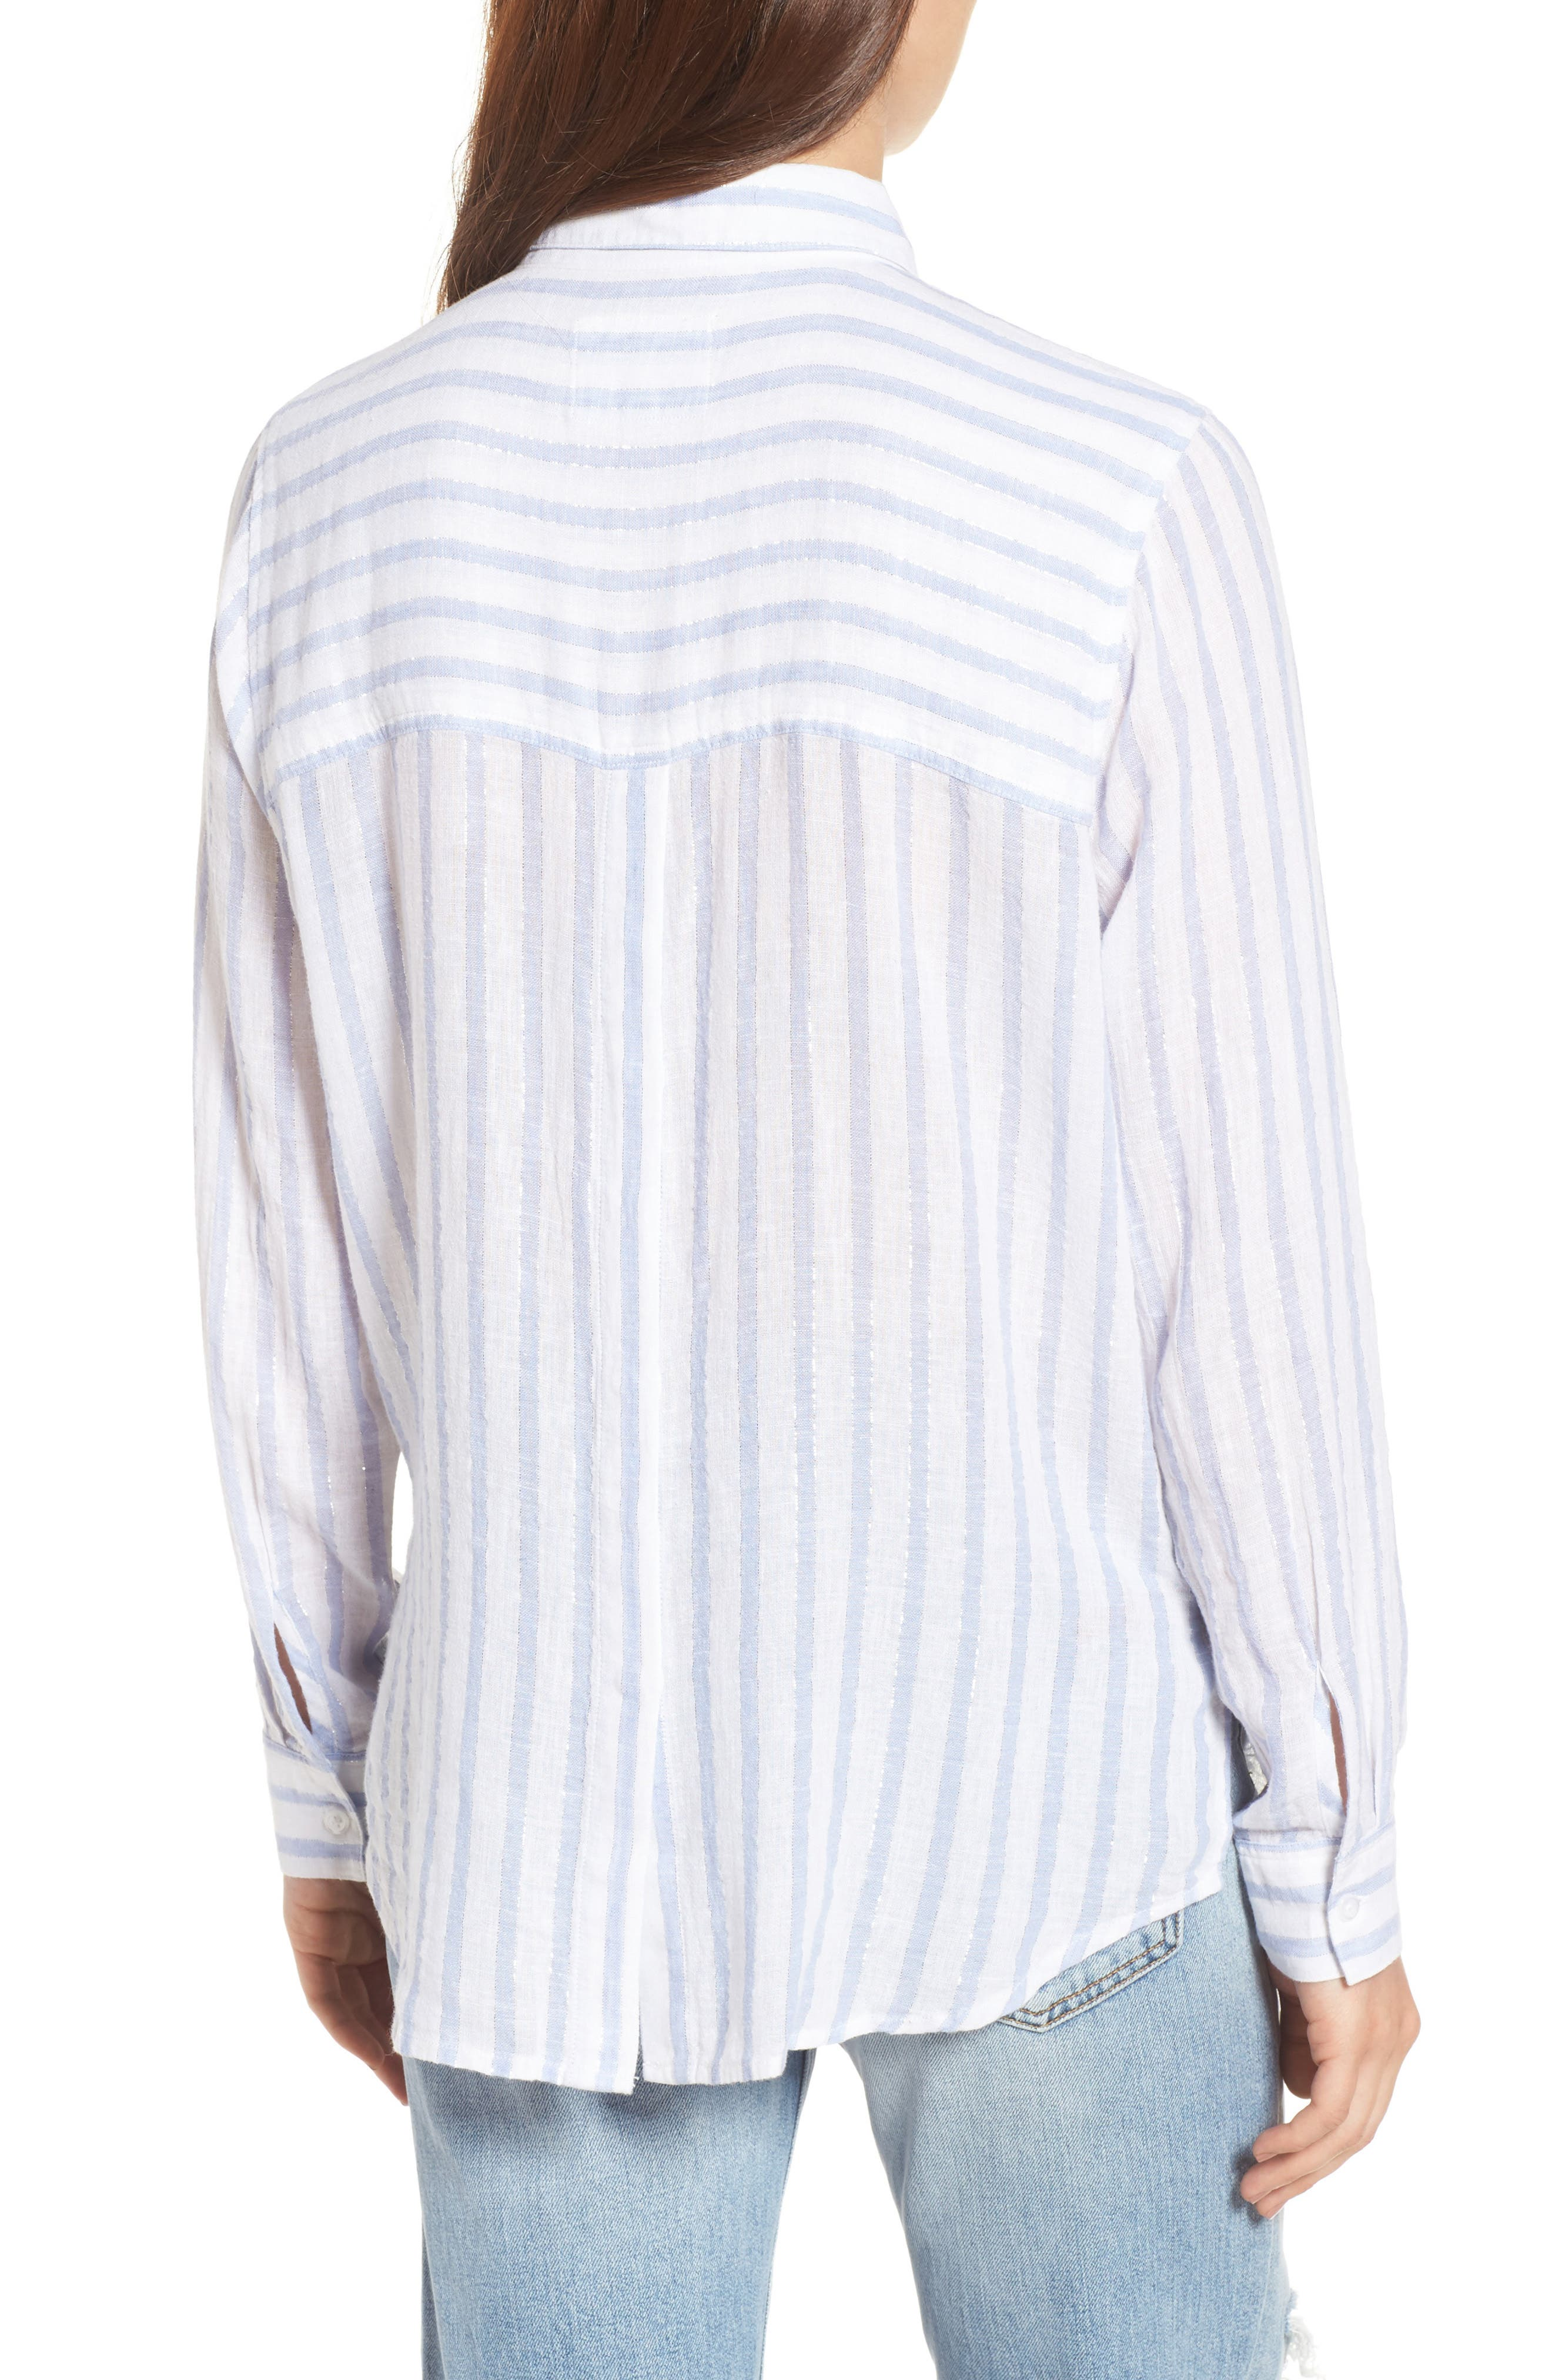 Sydney Vertical Shimmer Stripe Linen Blend Shirt,                             Alternate thumbnail 2, color,                             473